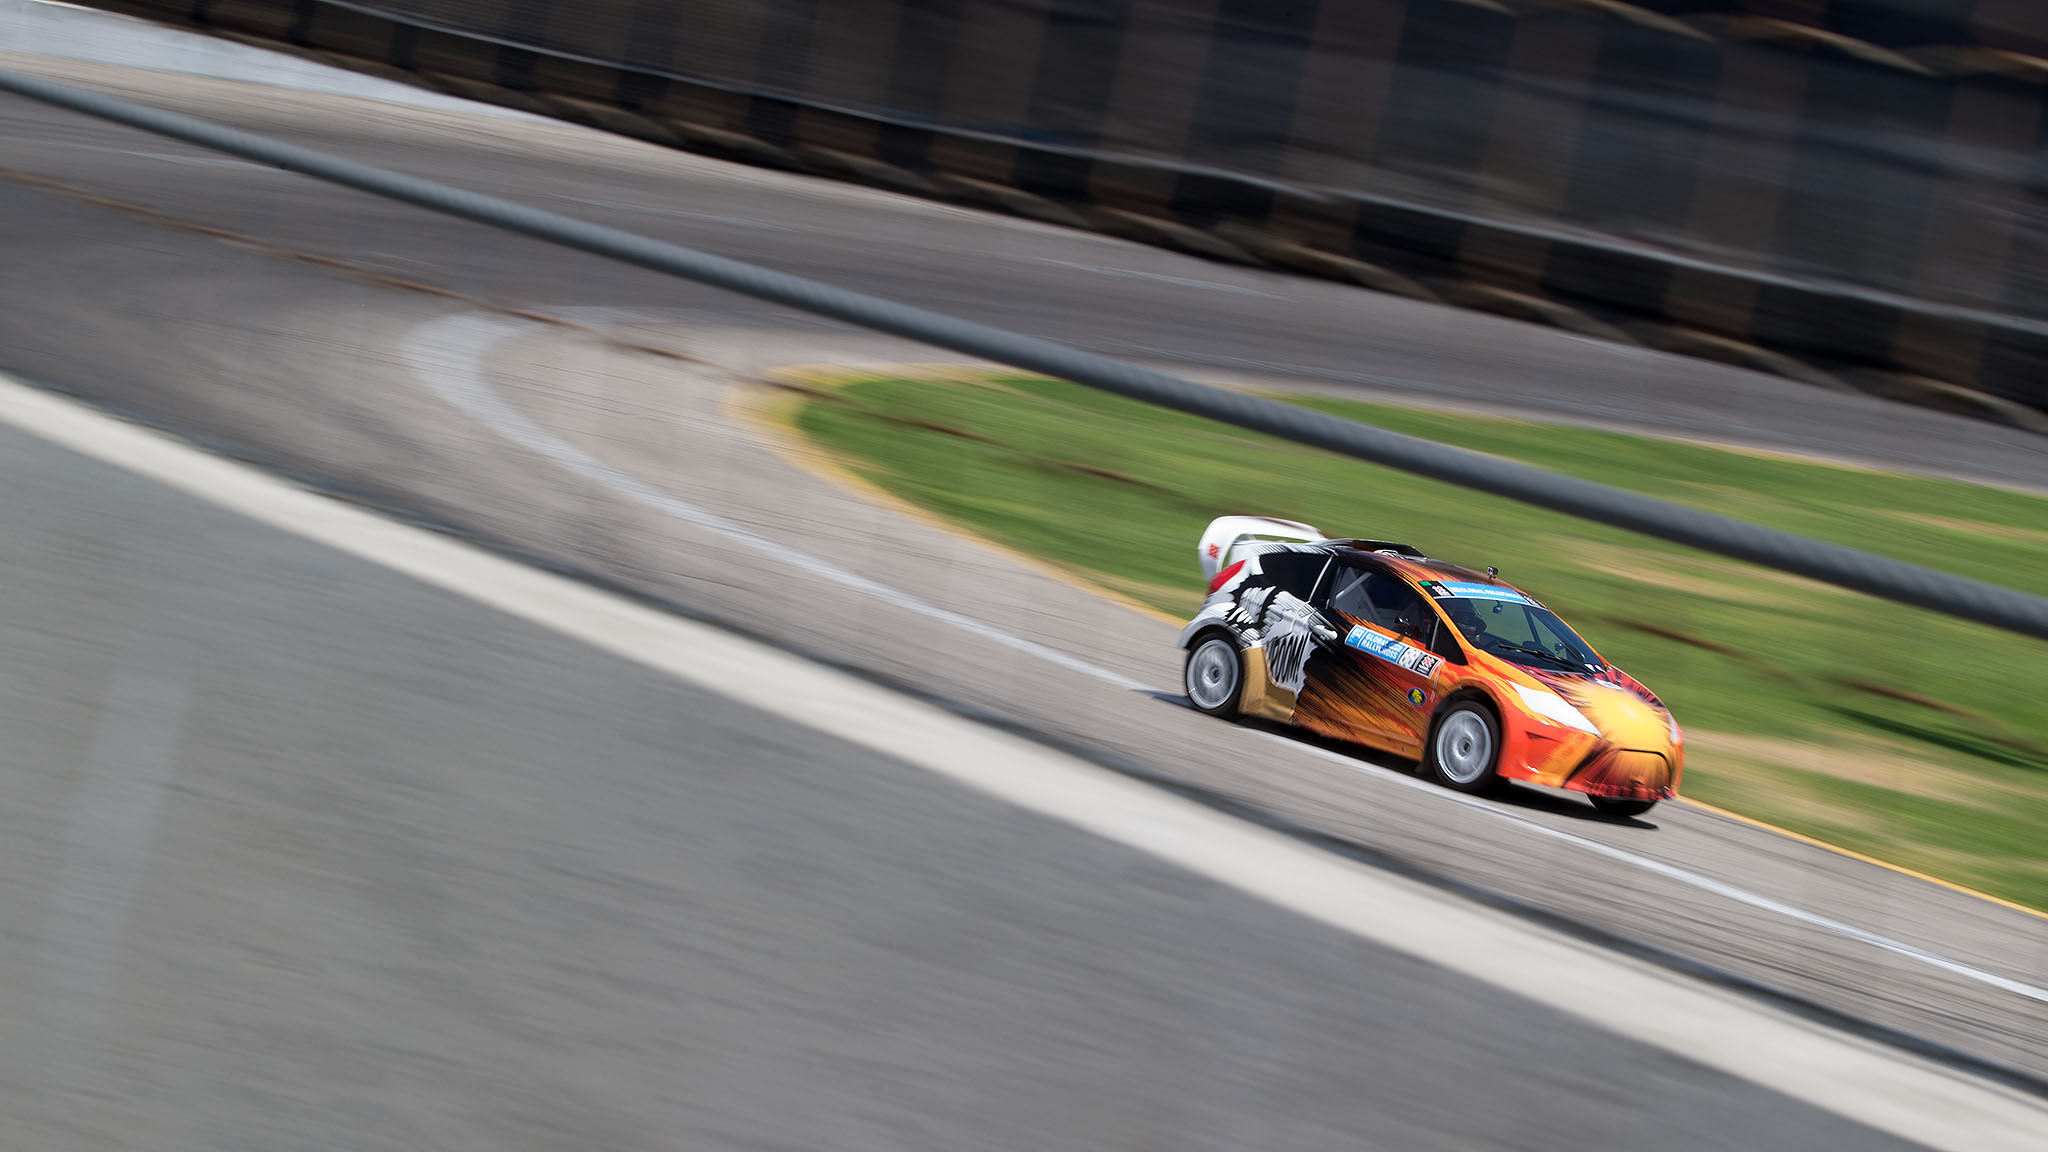 The final day of X Games Los Angeles belonged to motorsports, as Enduro X started the fun off at the Staples Center and Ford RallyCross took the event home out at the Irwindale Speedway.